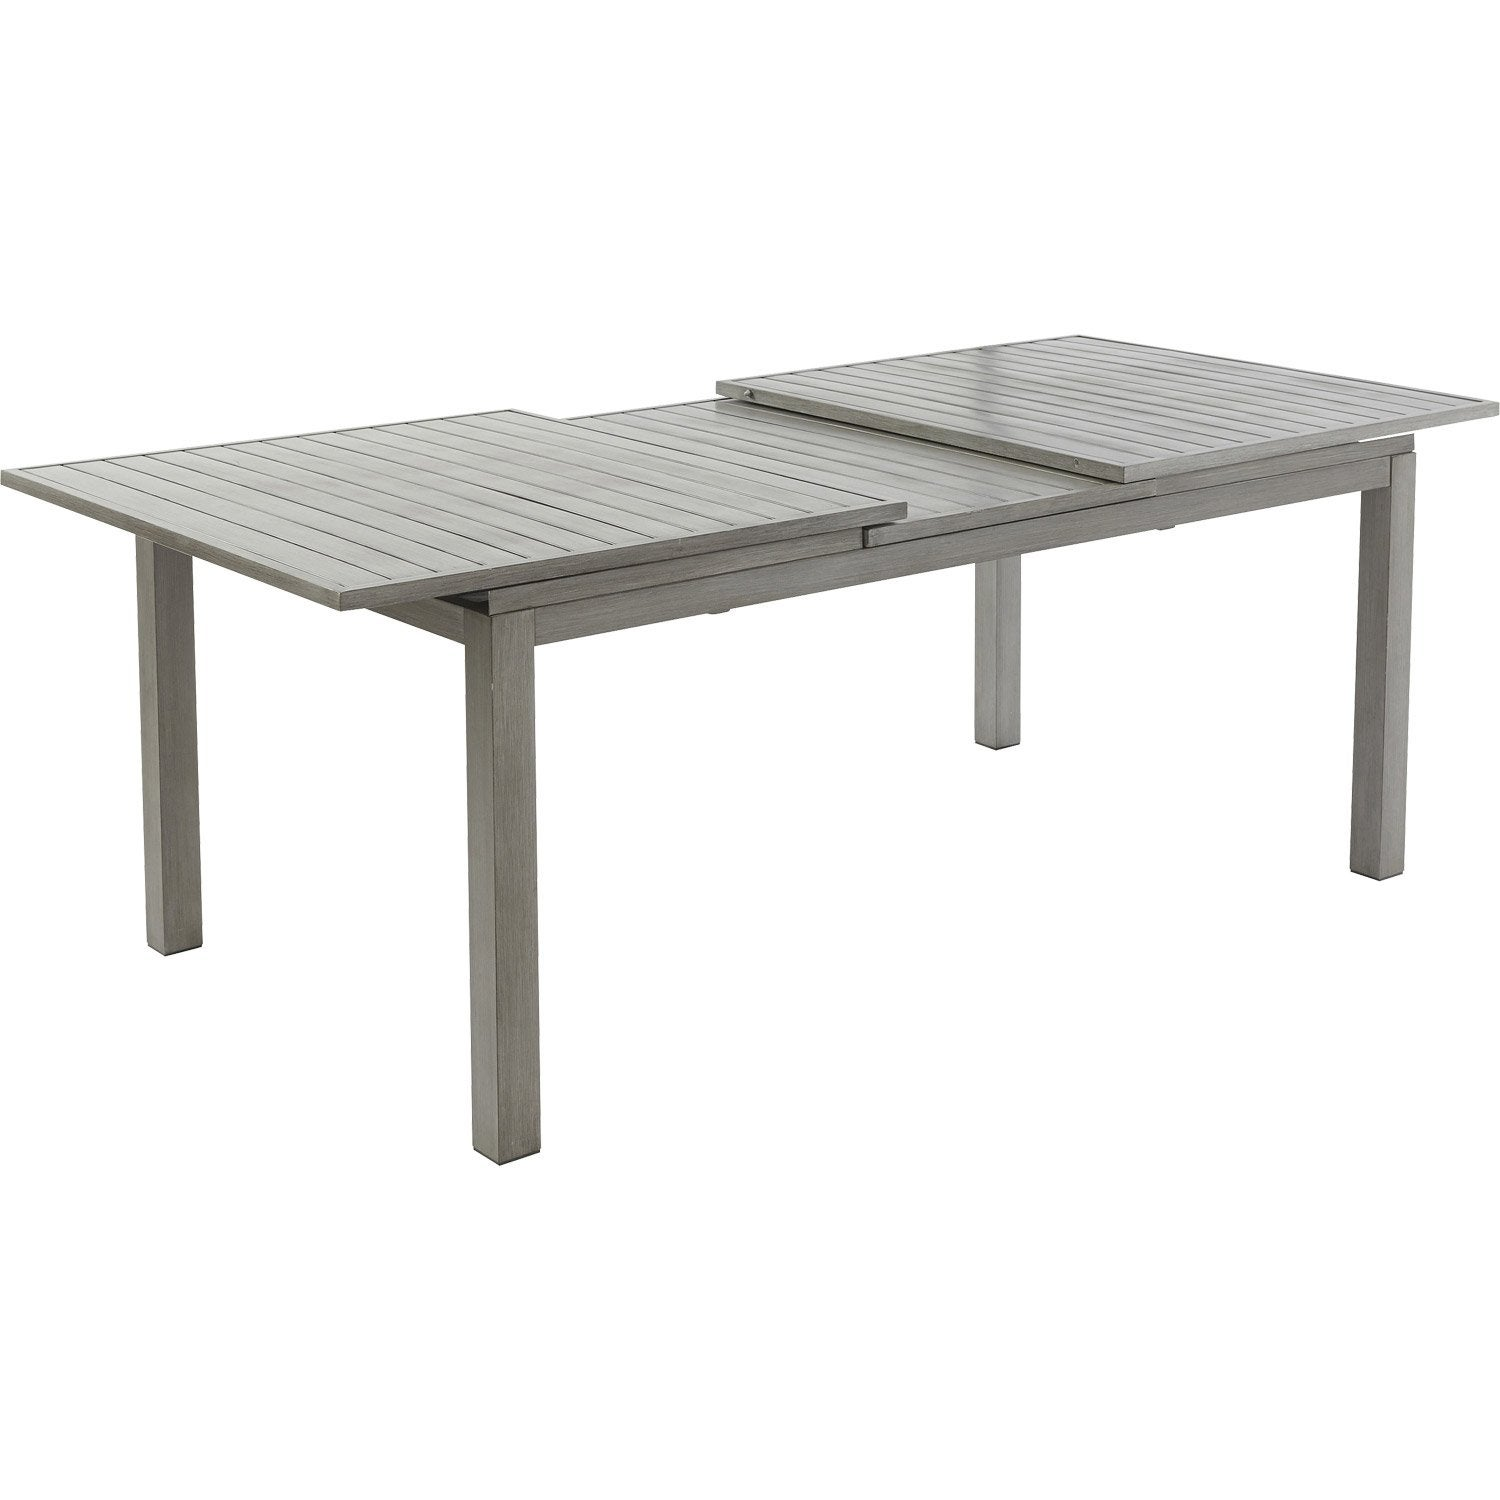 table de jardin avec extension rectangulaire aluwood